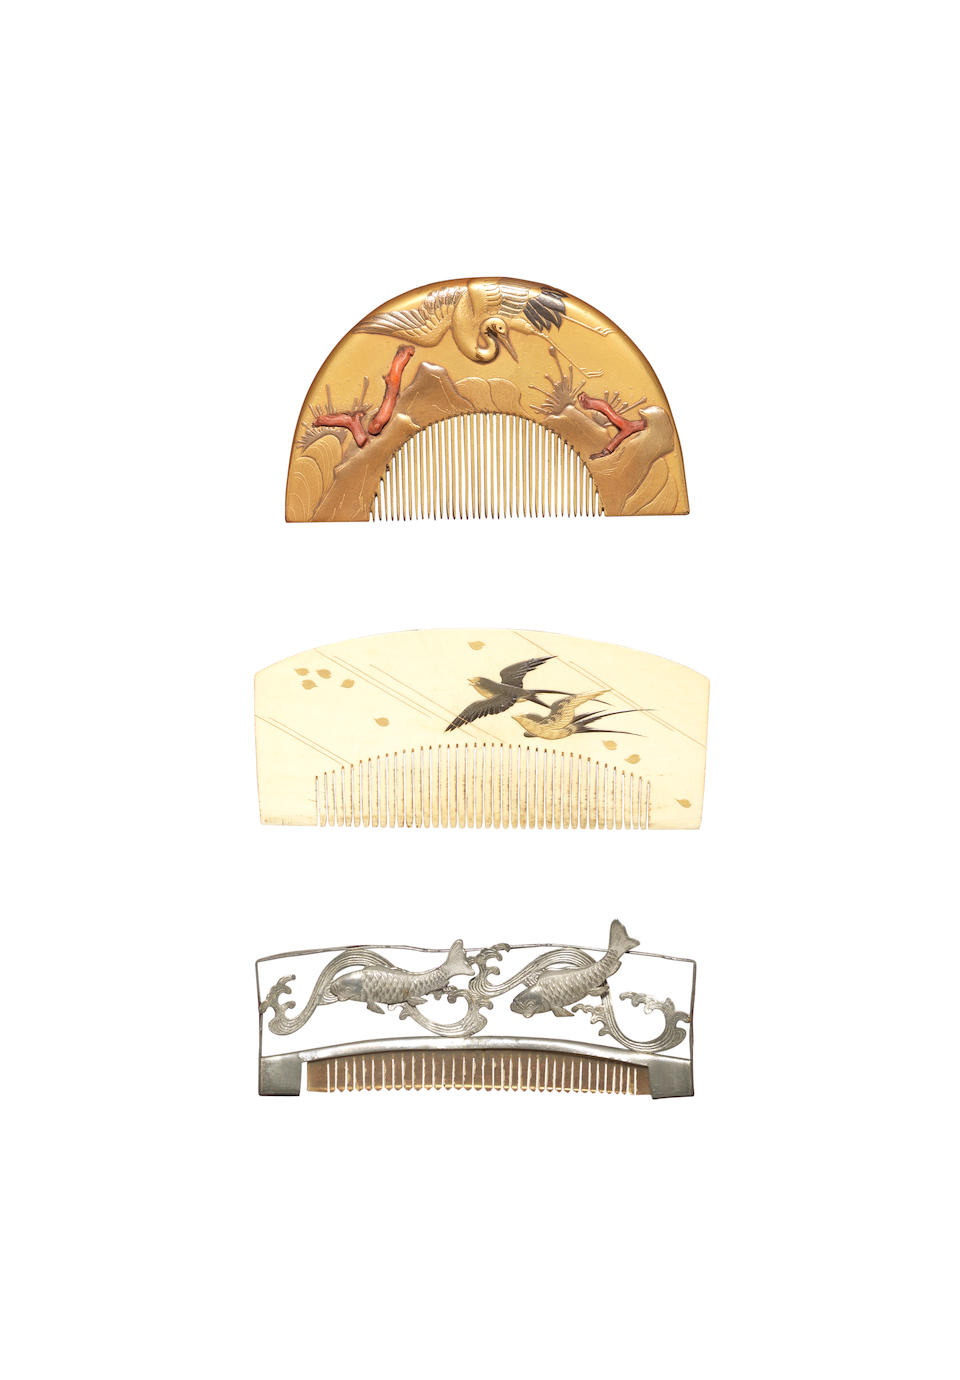 A remarkable study collection of assorted decorative hair accessories for elegant and traditional styling Late 19th/early 20th century